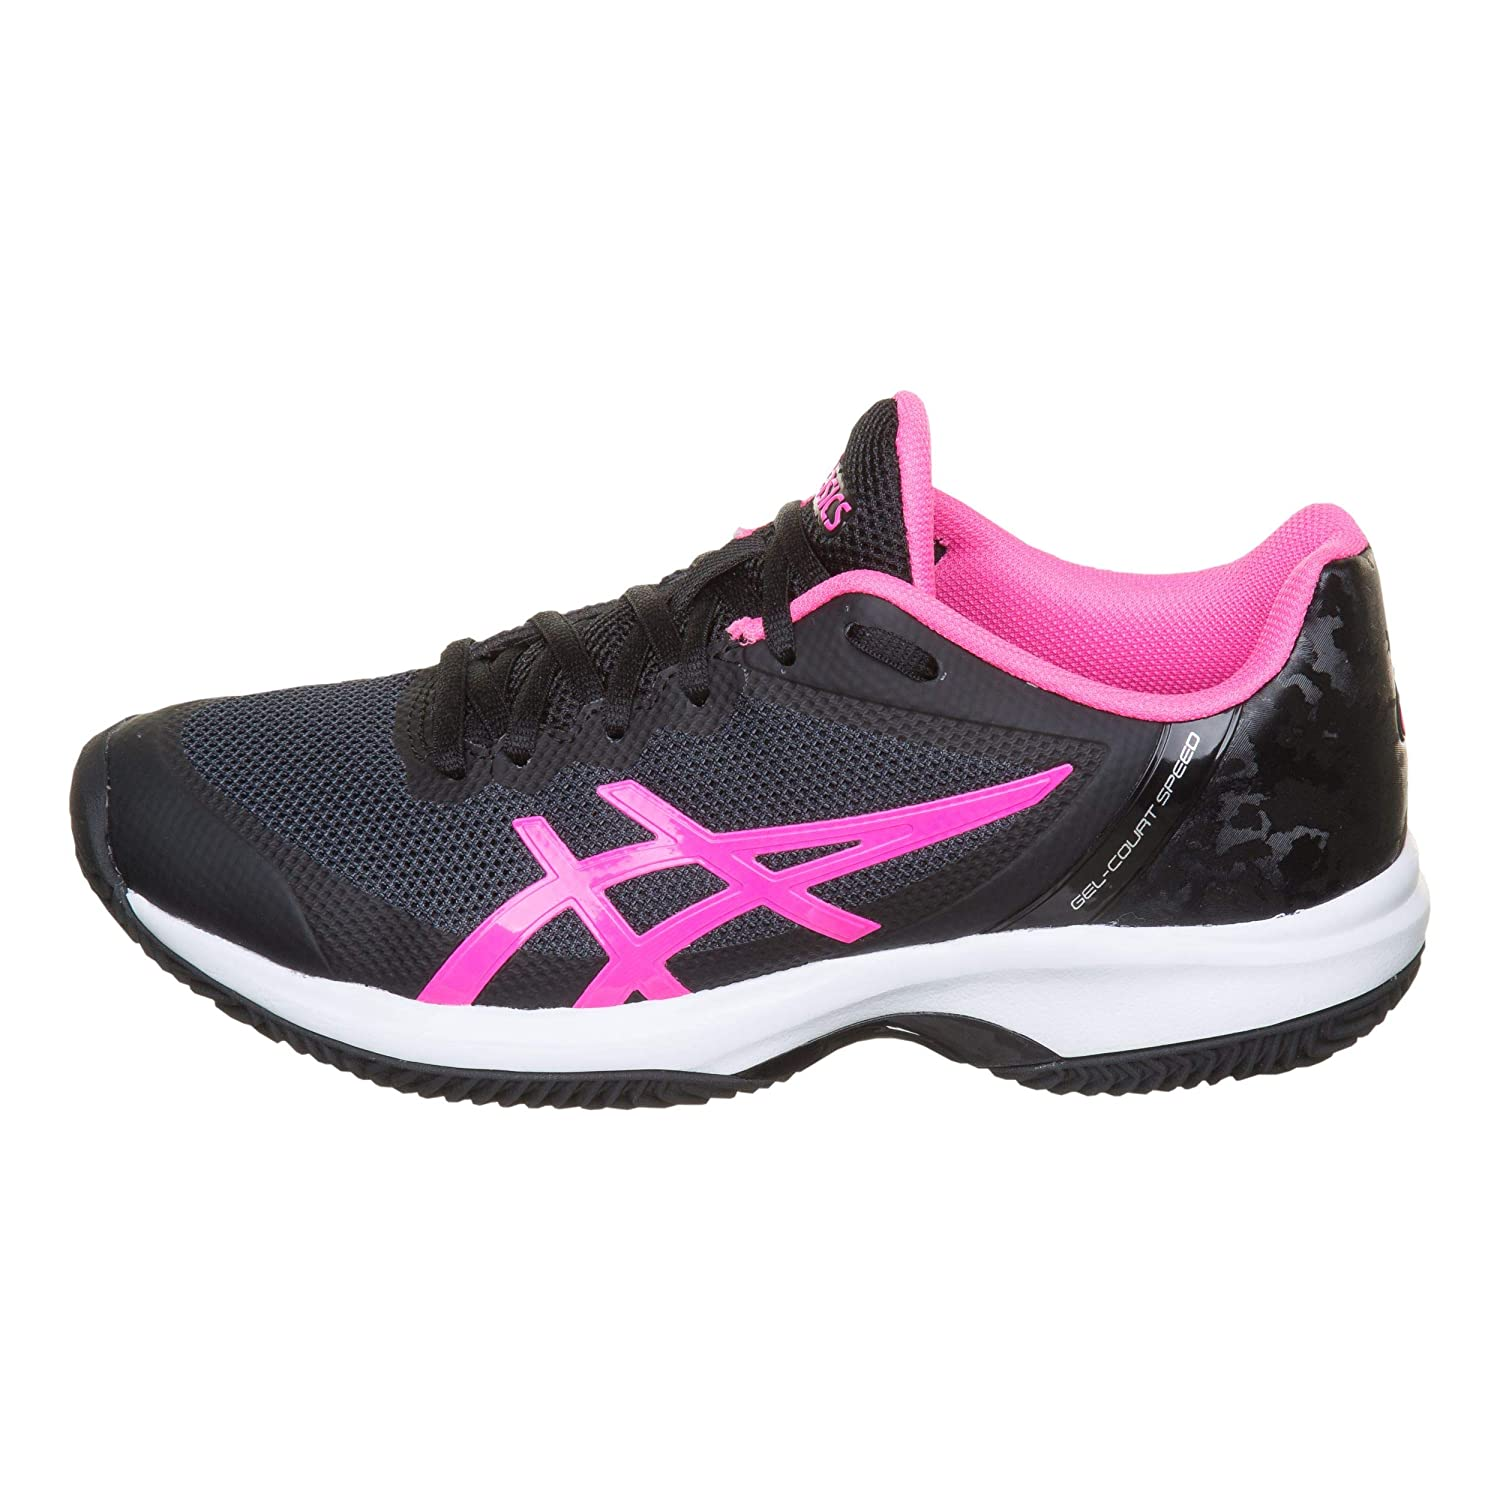 ASICS Gel Court Speed Clay Mujer Negro Rosa E851N 9020: Amazon.es ...